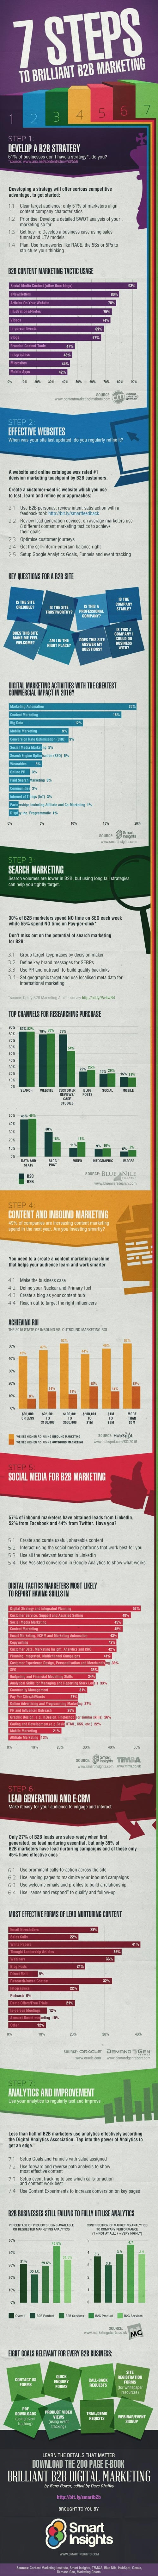 7-steps-to-brilliant-b2b-digital-marketing-infographic